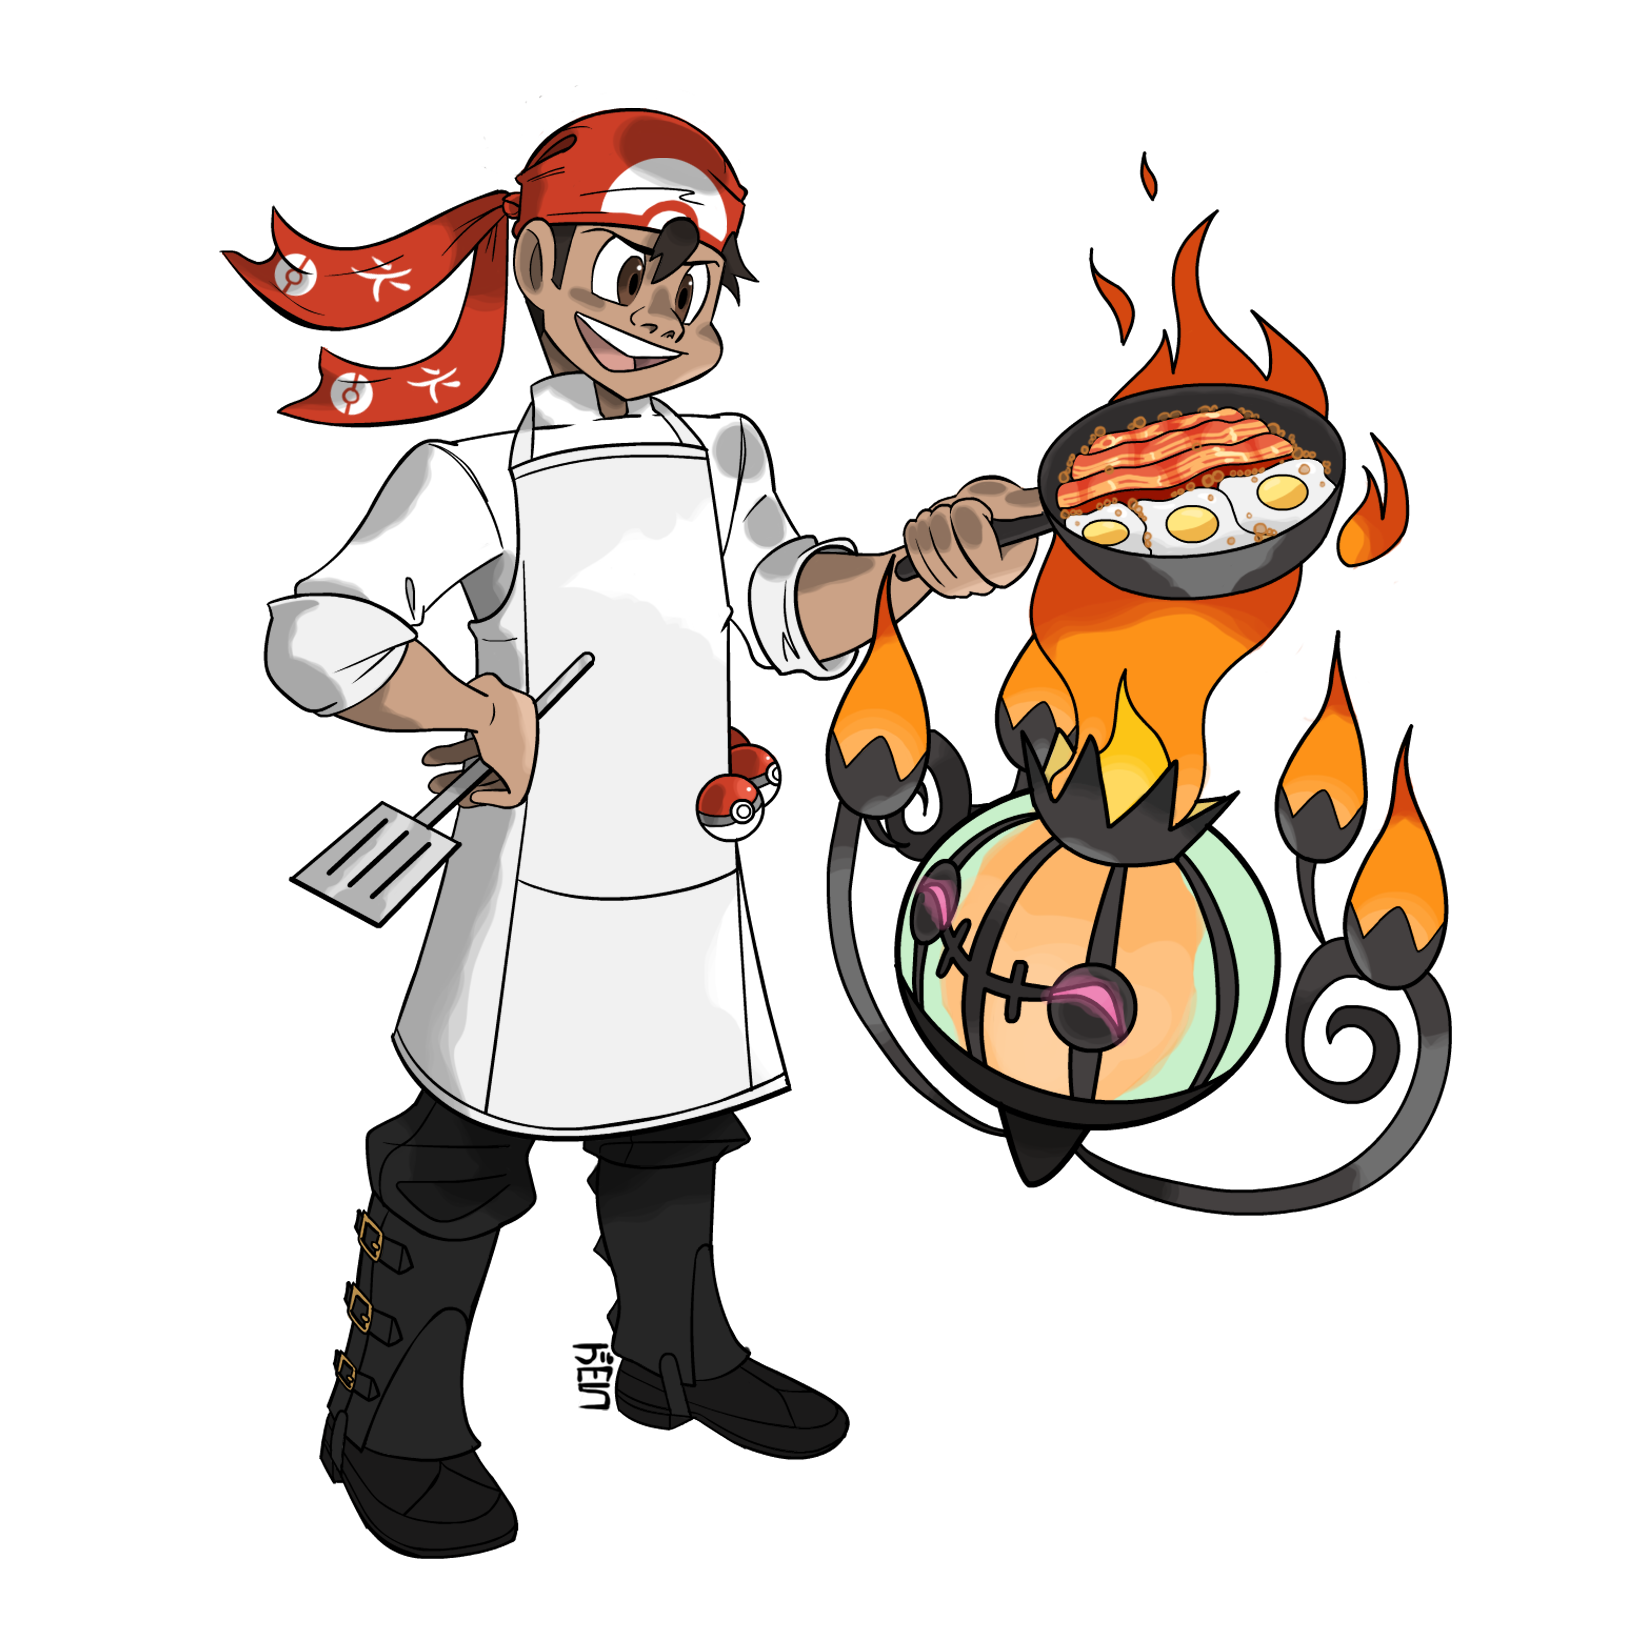 Pokemon Chef with a Ghost Type Pokemon. Ghost type